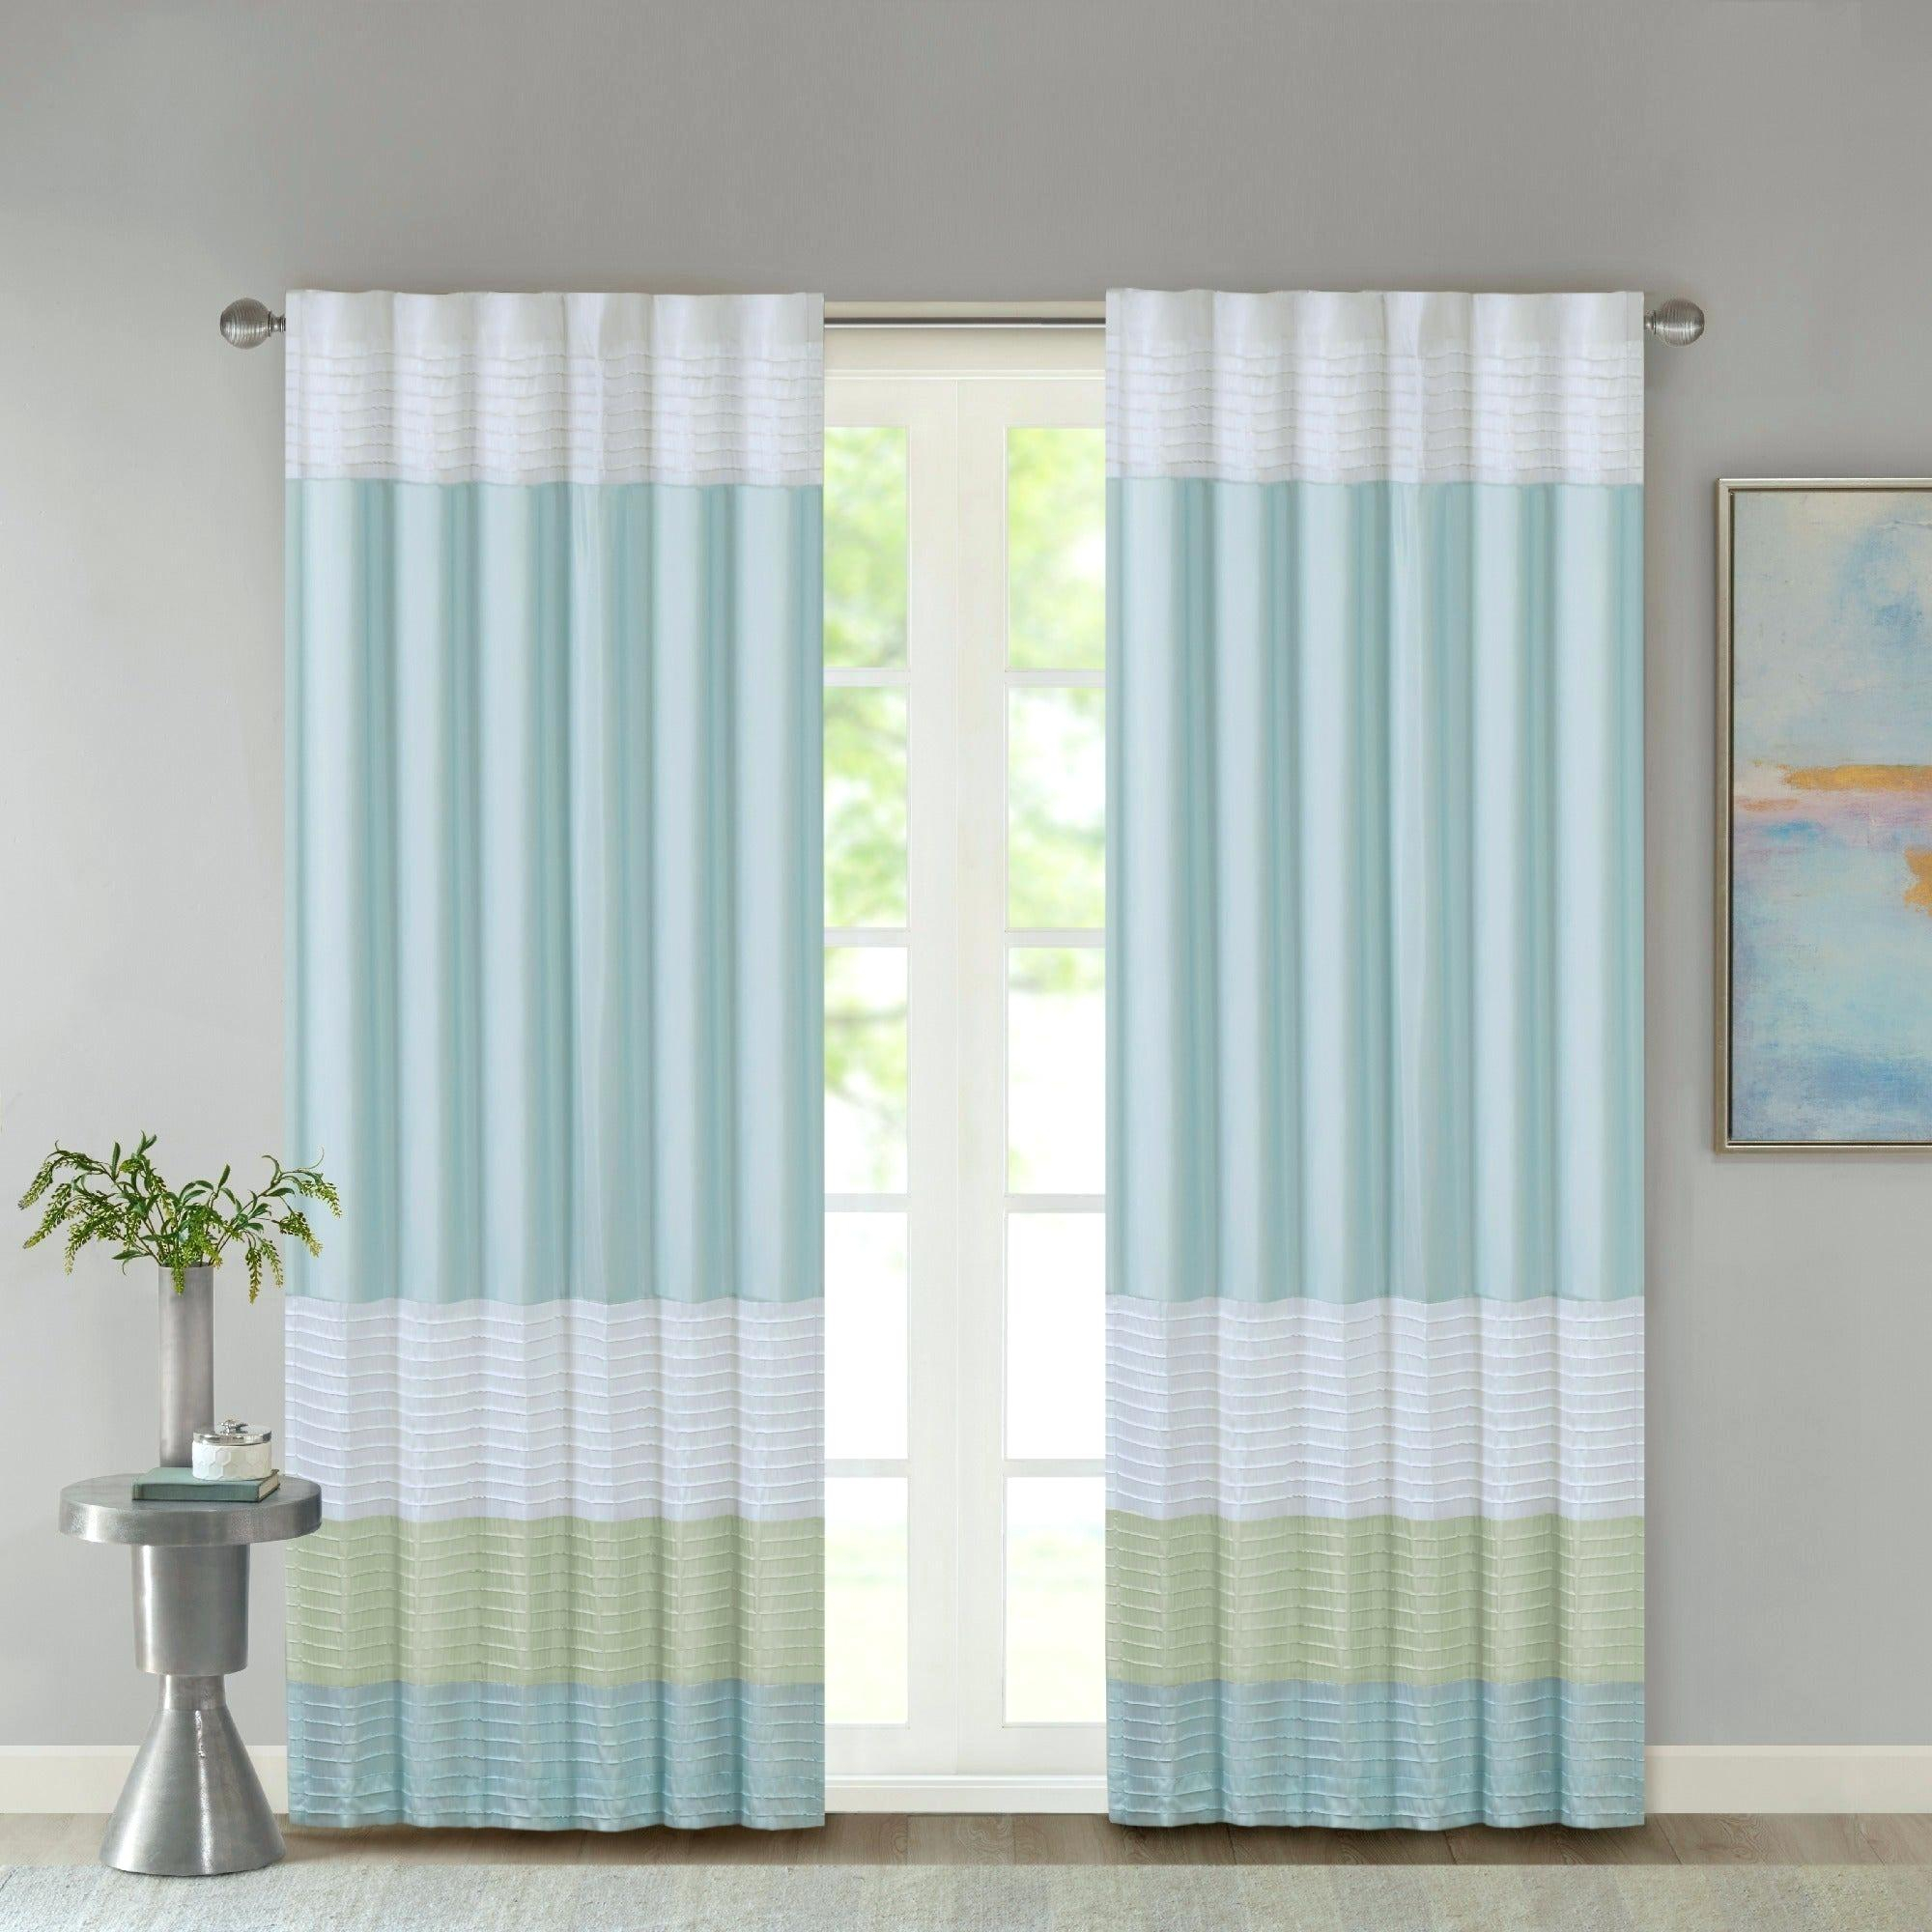 Madison Park Curtains Inside Fretwork Print Pattern Single Curtain Panels (View 12 of 20)